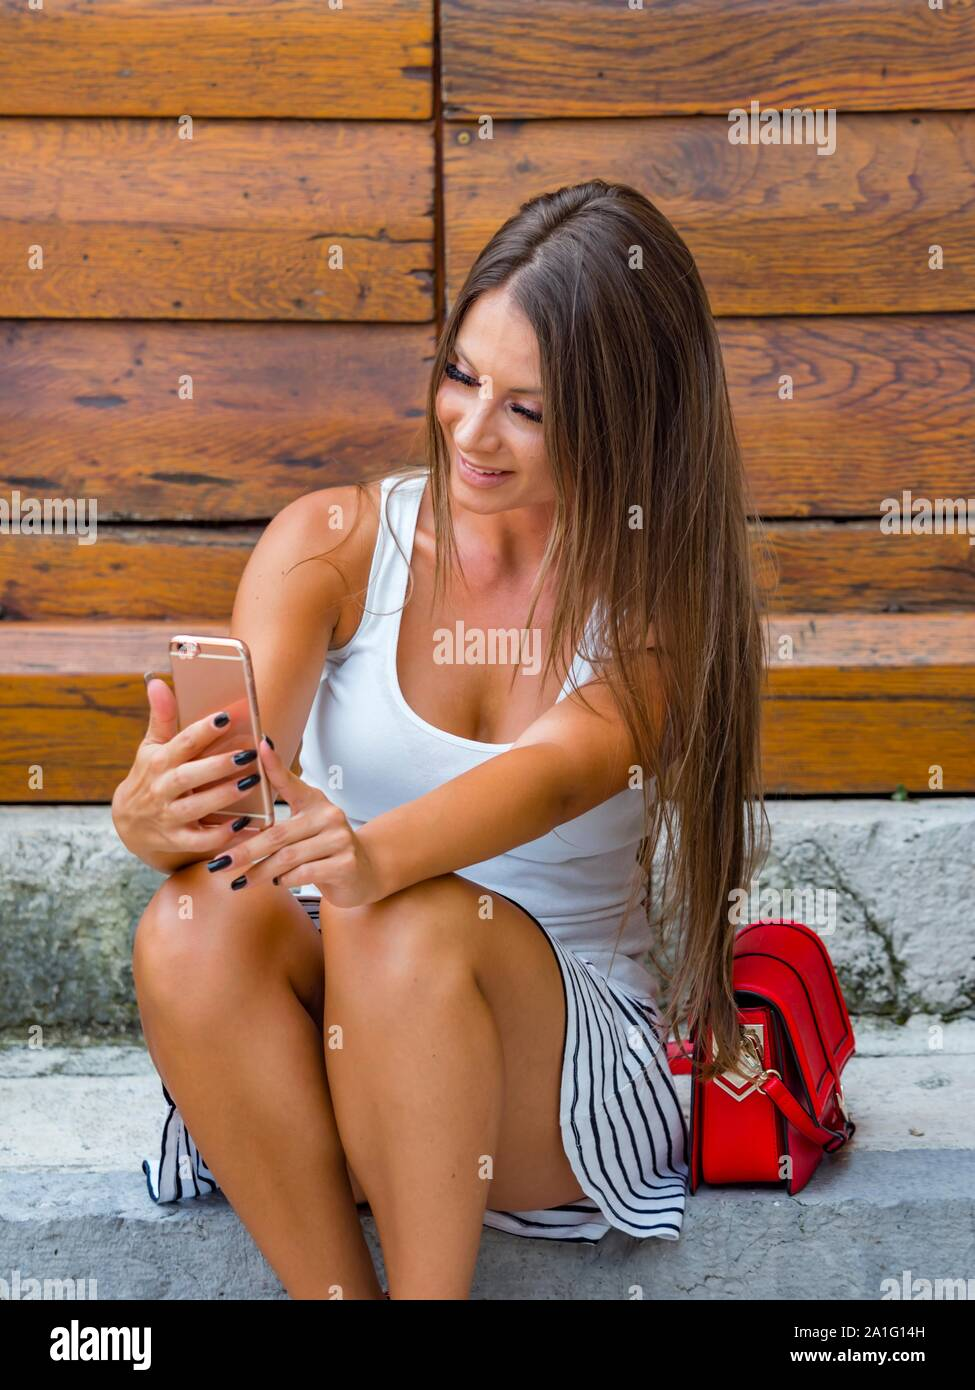 Attractive young woman looking down into camera cellphone making selfie sitting on entrance porch doorstep before wooden doors door Stock Photo